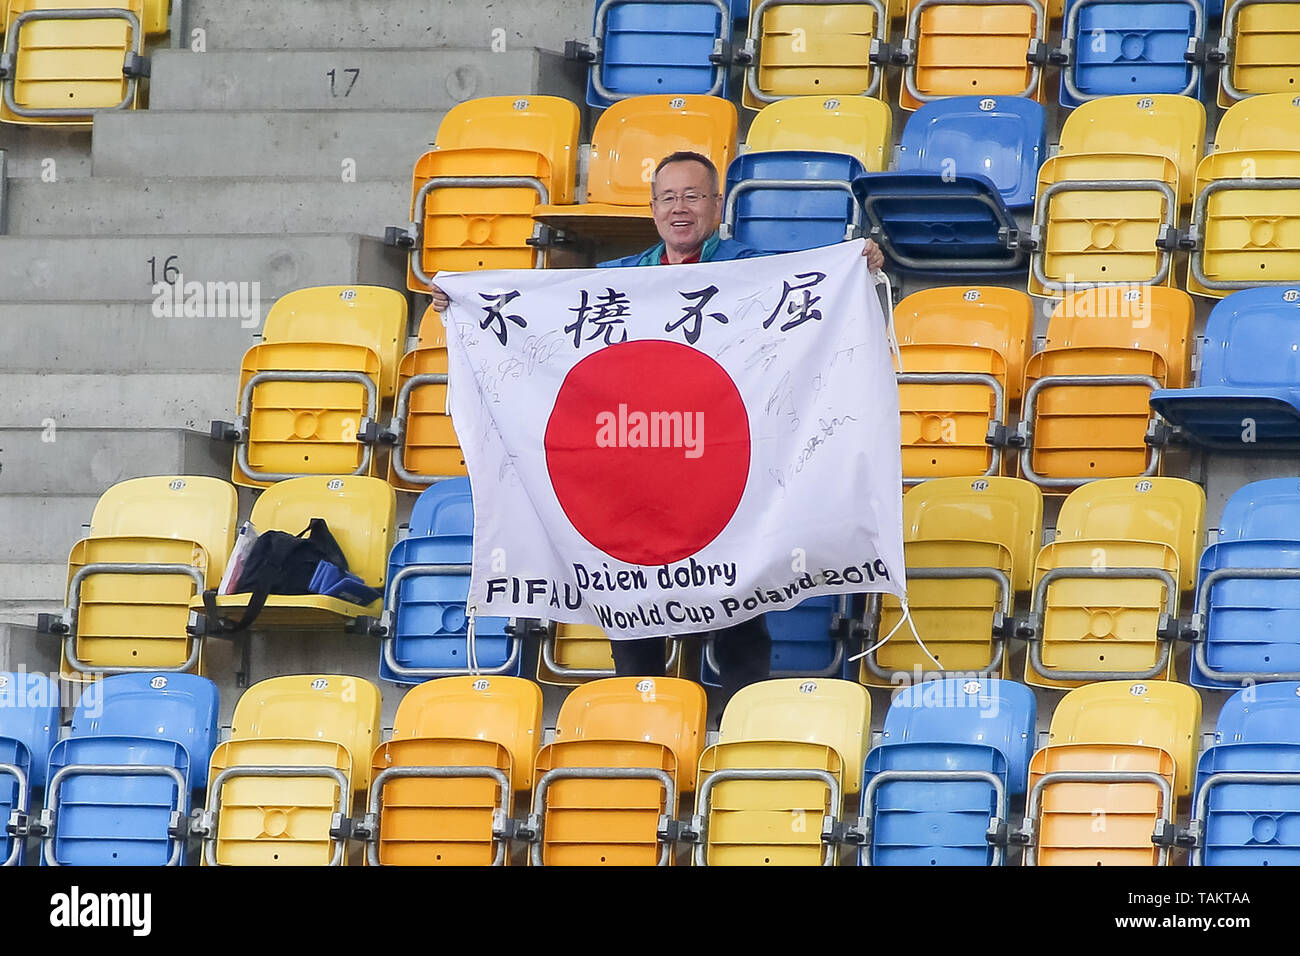 Gdynia Stadium, Gdynia, Poland - 26th May, 2019: Japan supporter with japan flag seen on tribune during FIFA U-20 World Cup match between Mexico and Japan (GROUP B) in Gdynia. (Final score; Mexico 0:3 Japan) - Stock Image